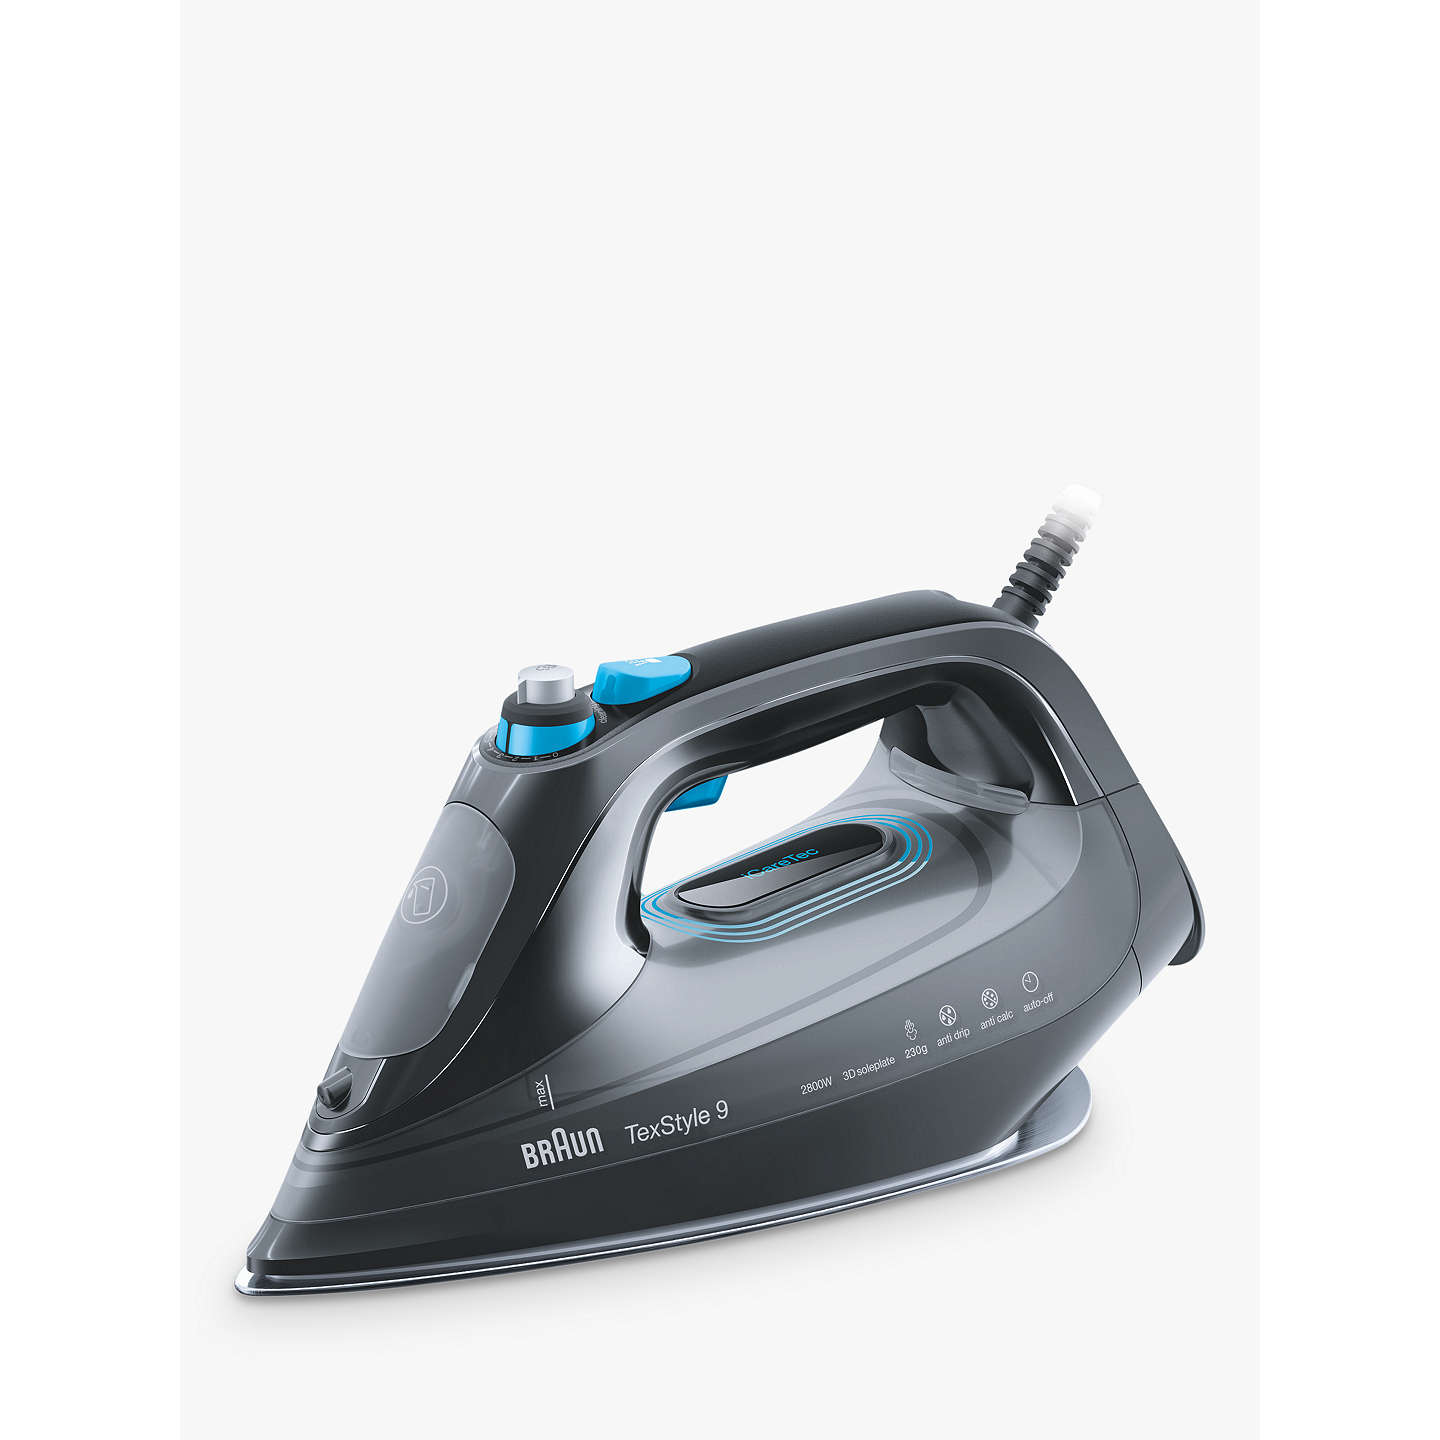 braun si9188bk texstyle 9 pro steam iron grey blue at. Black Bedroom Furniture Sets. Home Design Ideas